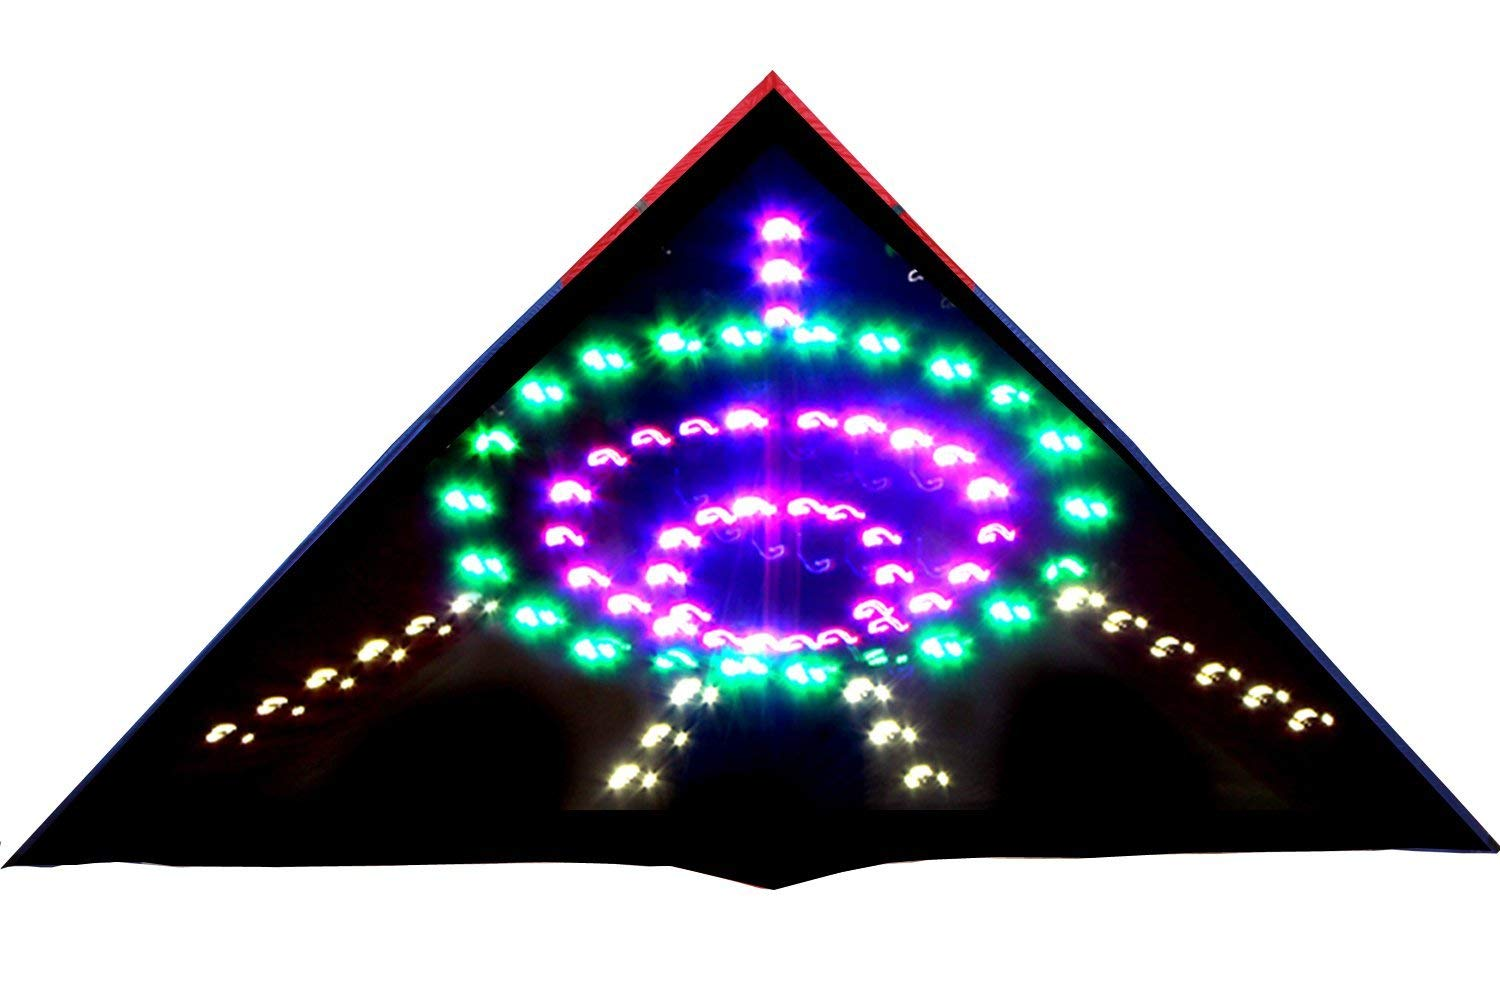 HENGDA KITE 136 LED Night Kite Soft Cloth UFO Flying Saucer Super Bright LEDs Luminous Kite by HENGDA KITE